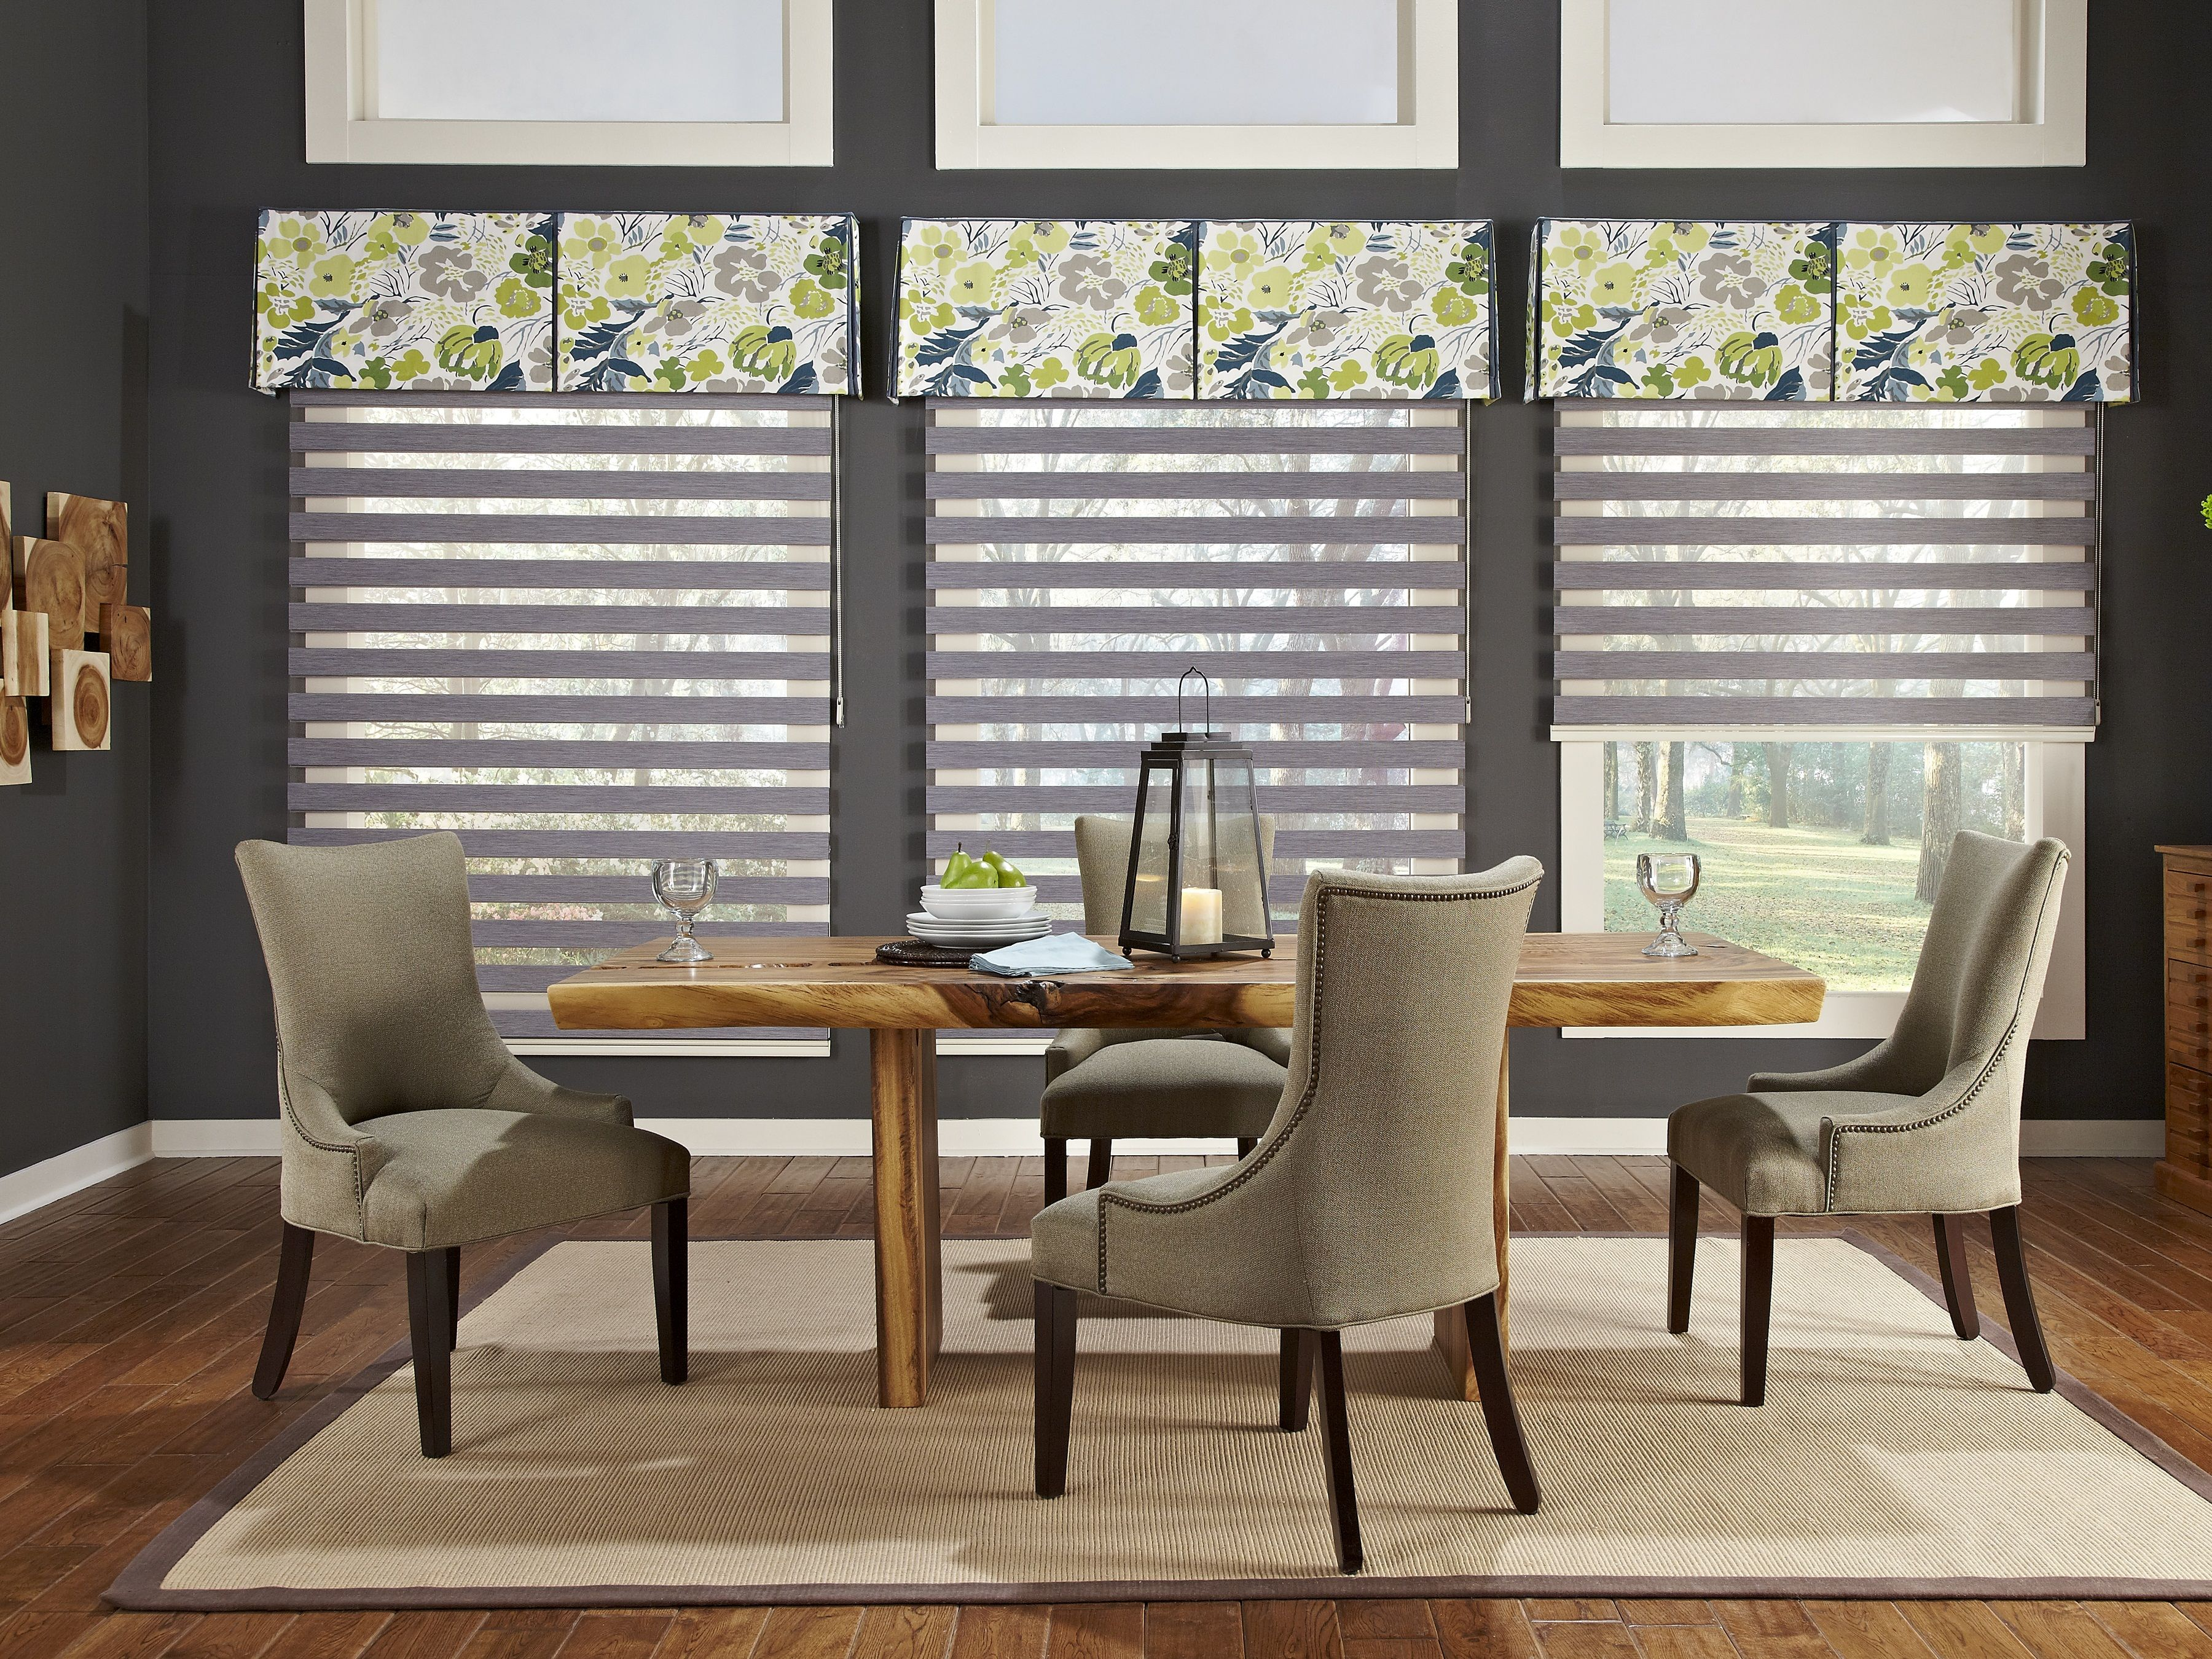 Modern Valances Wood Table And Wall Decor Window Treatments Living Room Dining Room Window Treatments Dining Room Small